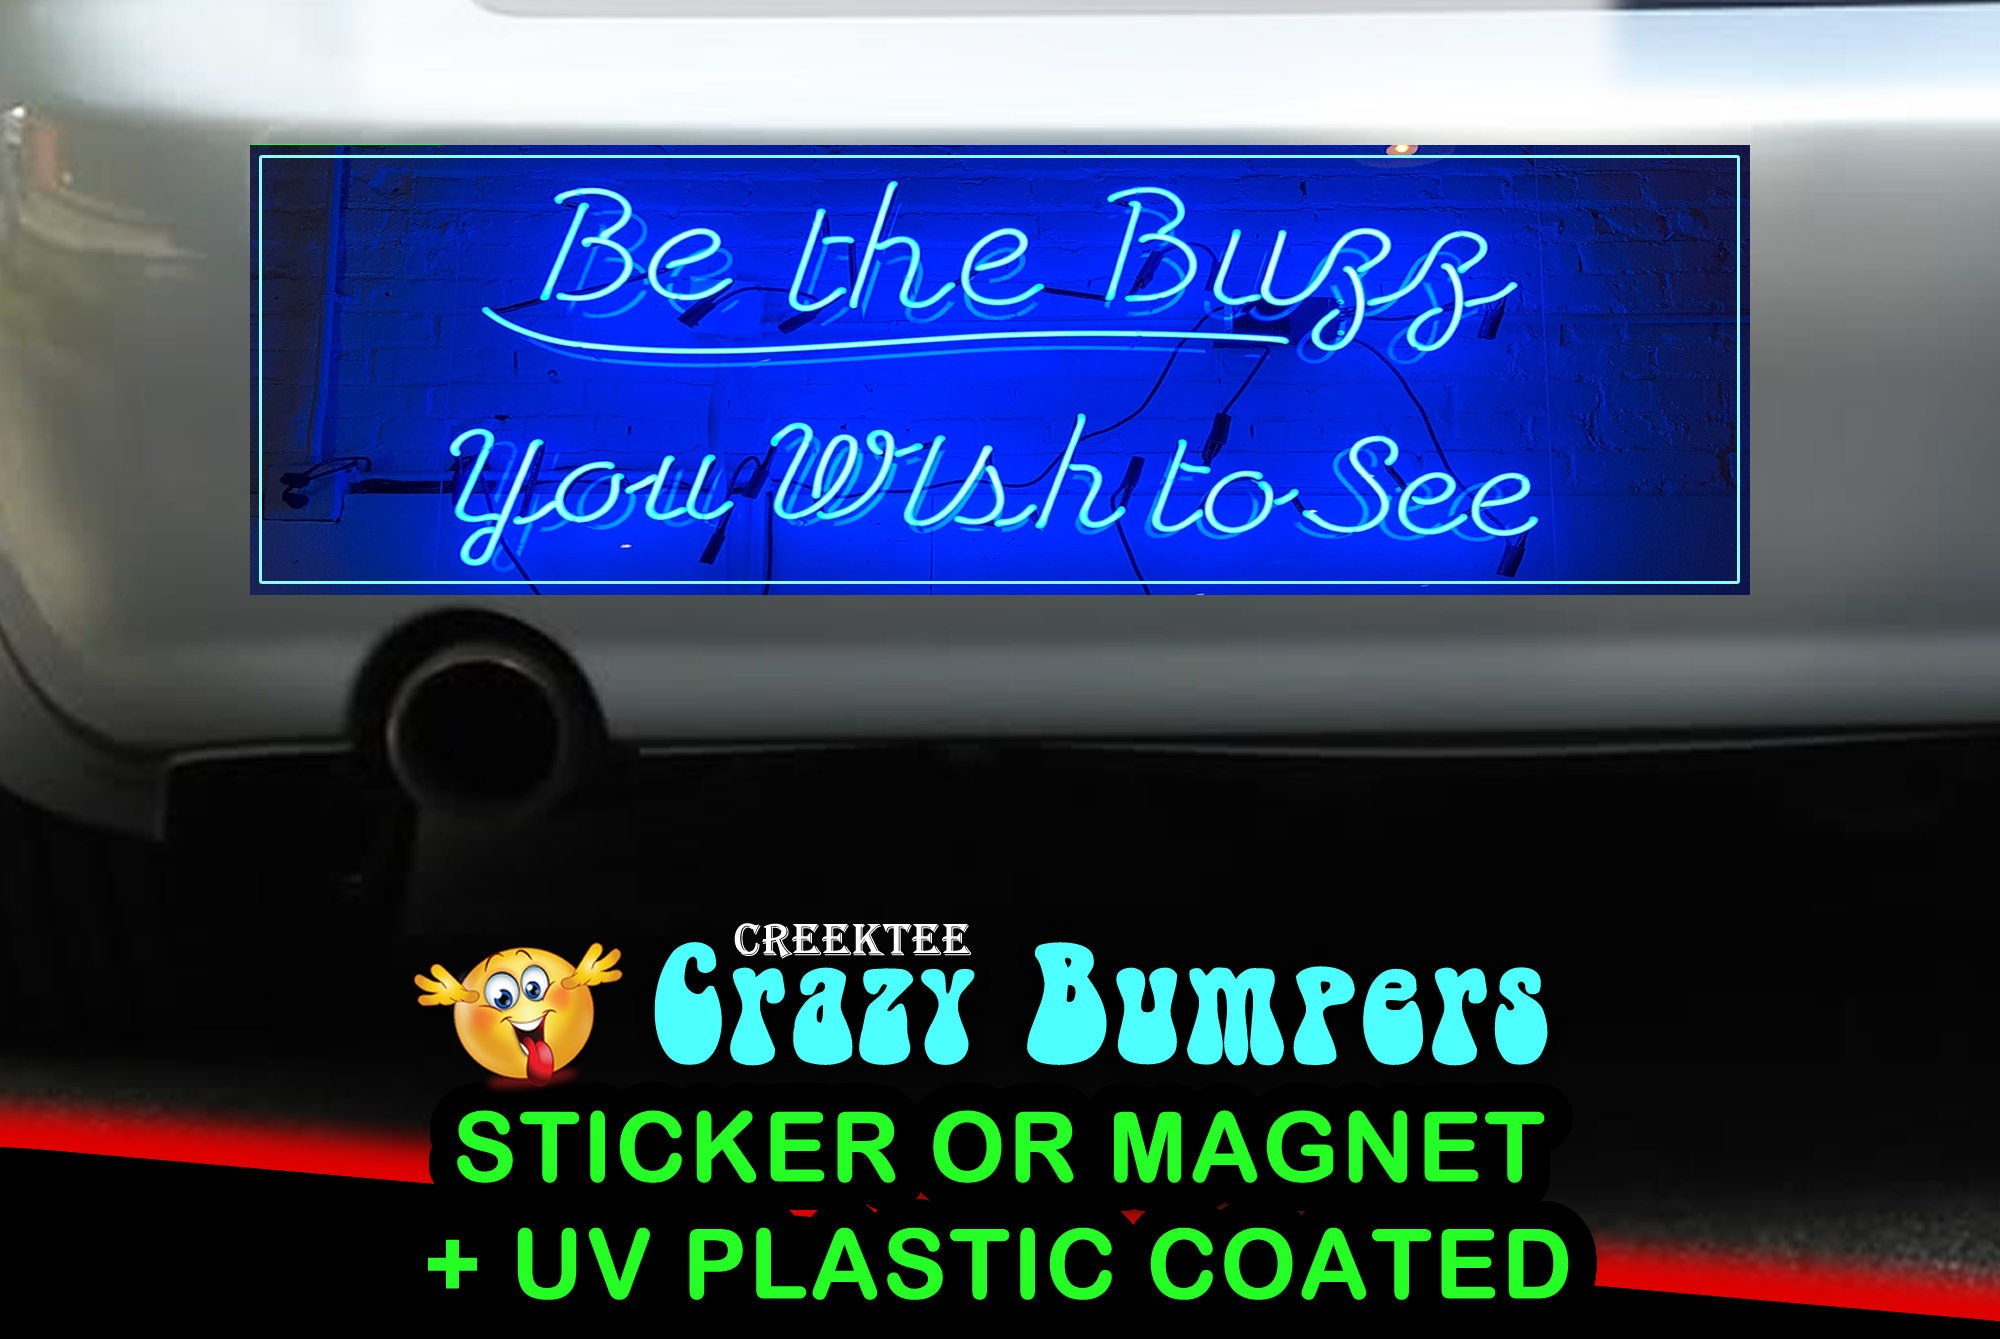 $9.74 - Neon Be The Buzz You Wish To See 10 x 3 Bumper Sticker or Magnet - Custom changes and orders welcomed!